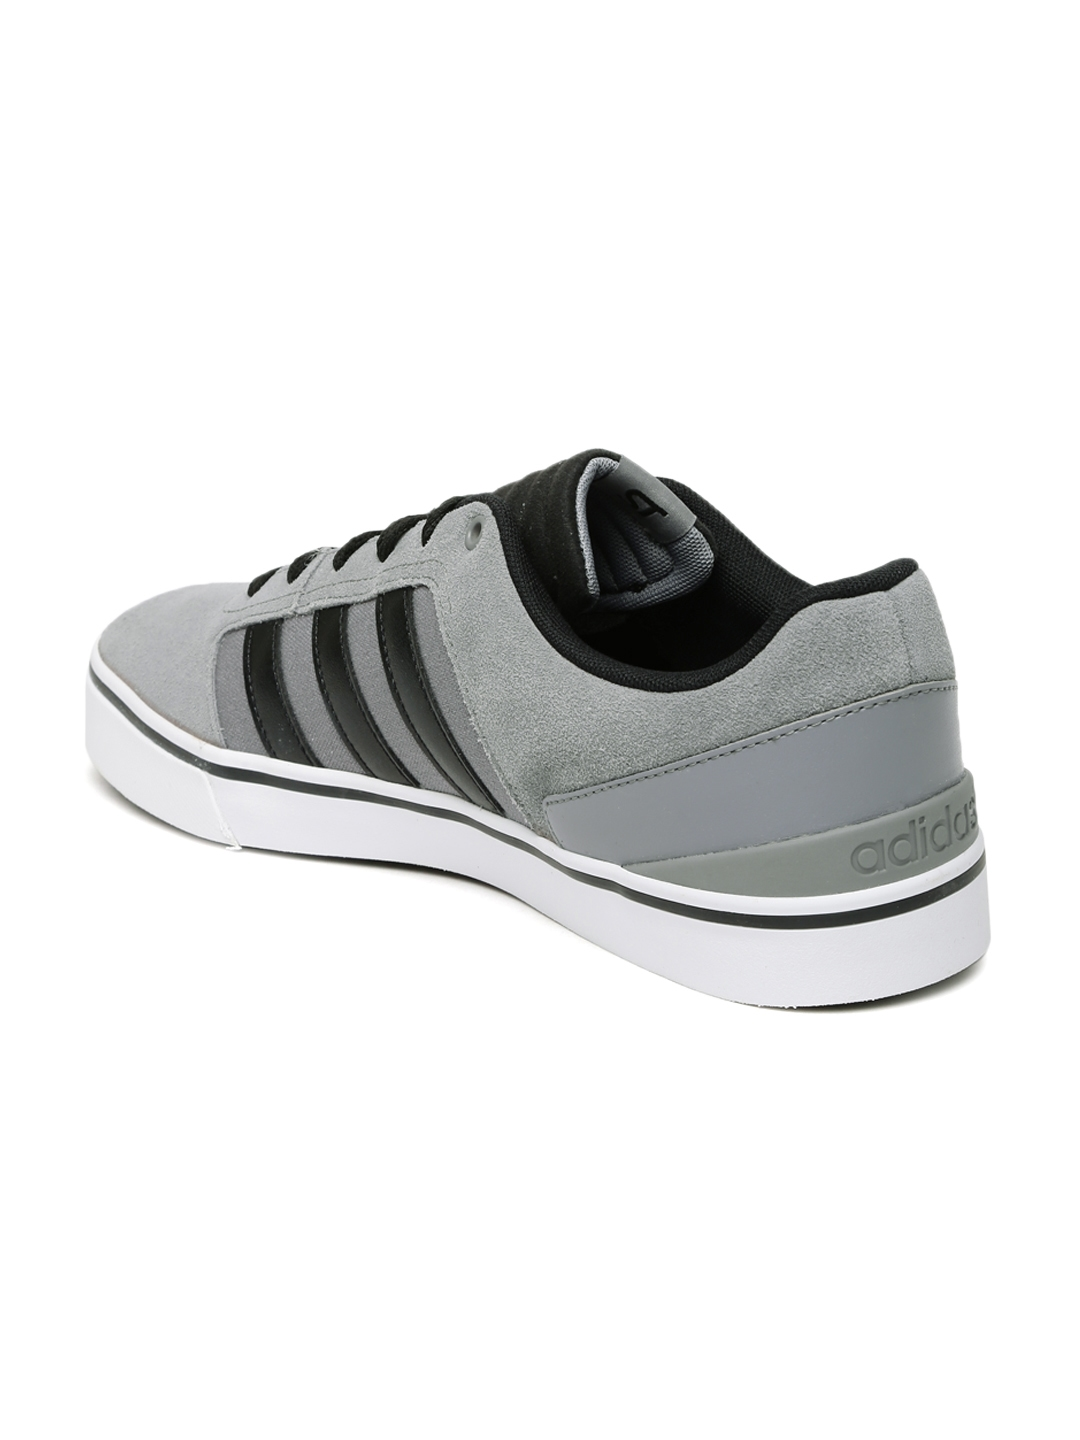 timeless design 04622 5757a ADIDAS NEO Men Grey Suede HAWTHORN Sneakers